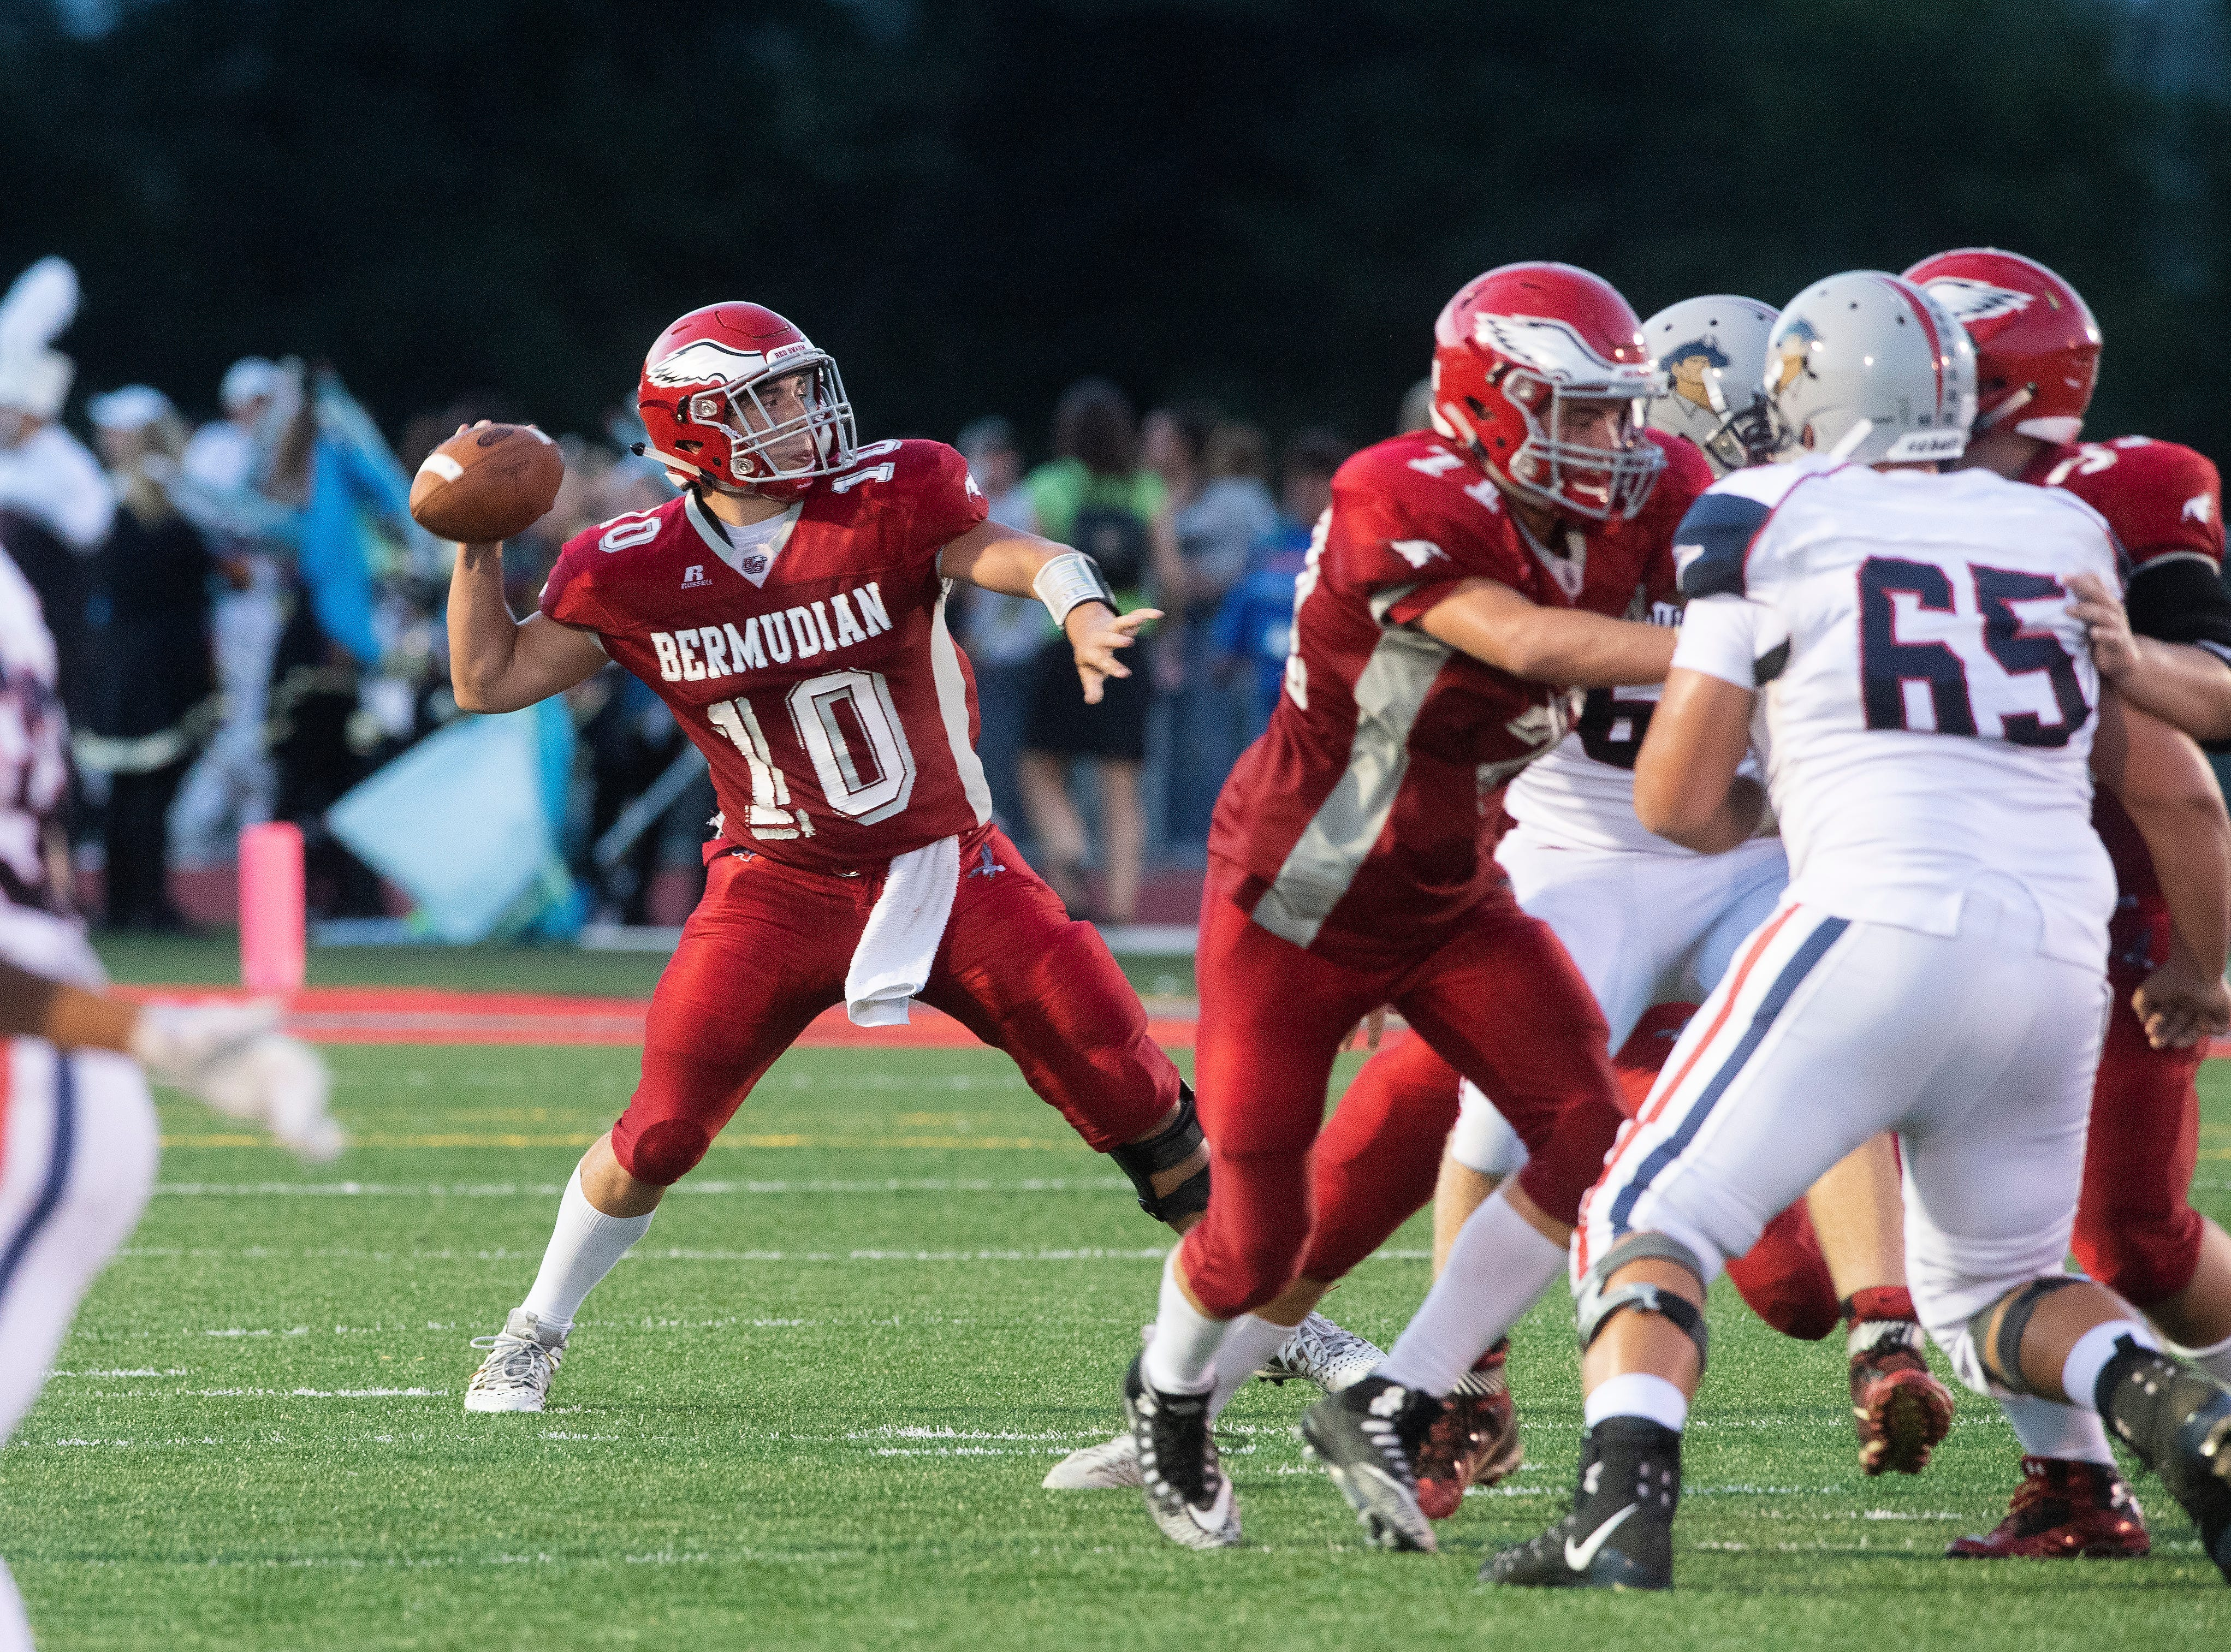 Bermudian Springs quarterback Chase Dull (10) gets set to pass, Friday, Aug. 24, 2018. The Eagles skimmed past the Colonials, 28-22.